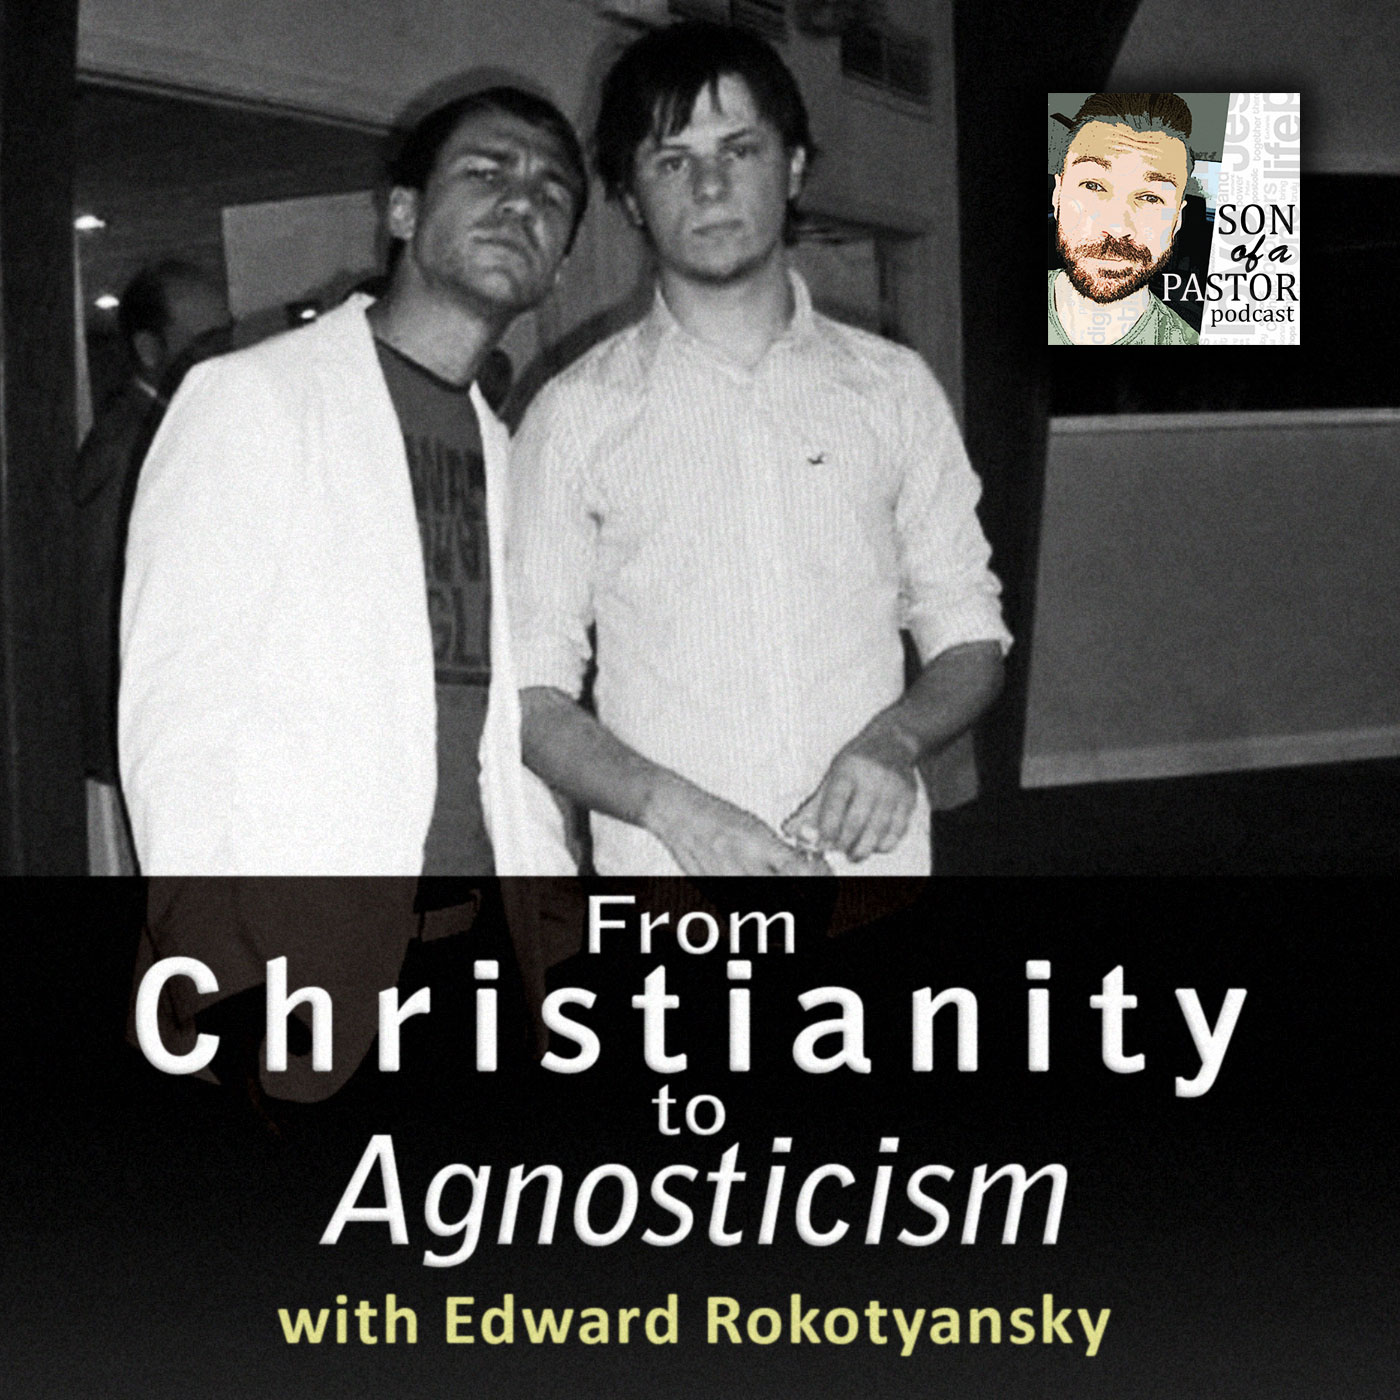 From Christianity to Agnosticism with Edward Rokotyansky - Episode 21